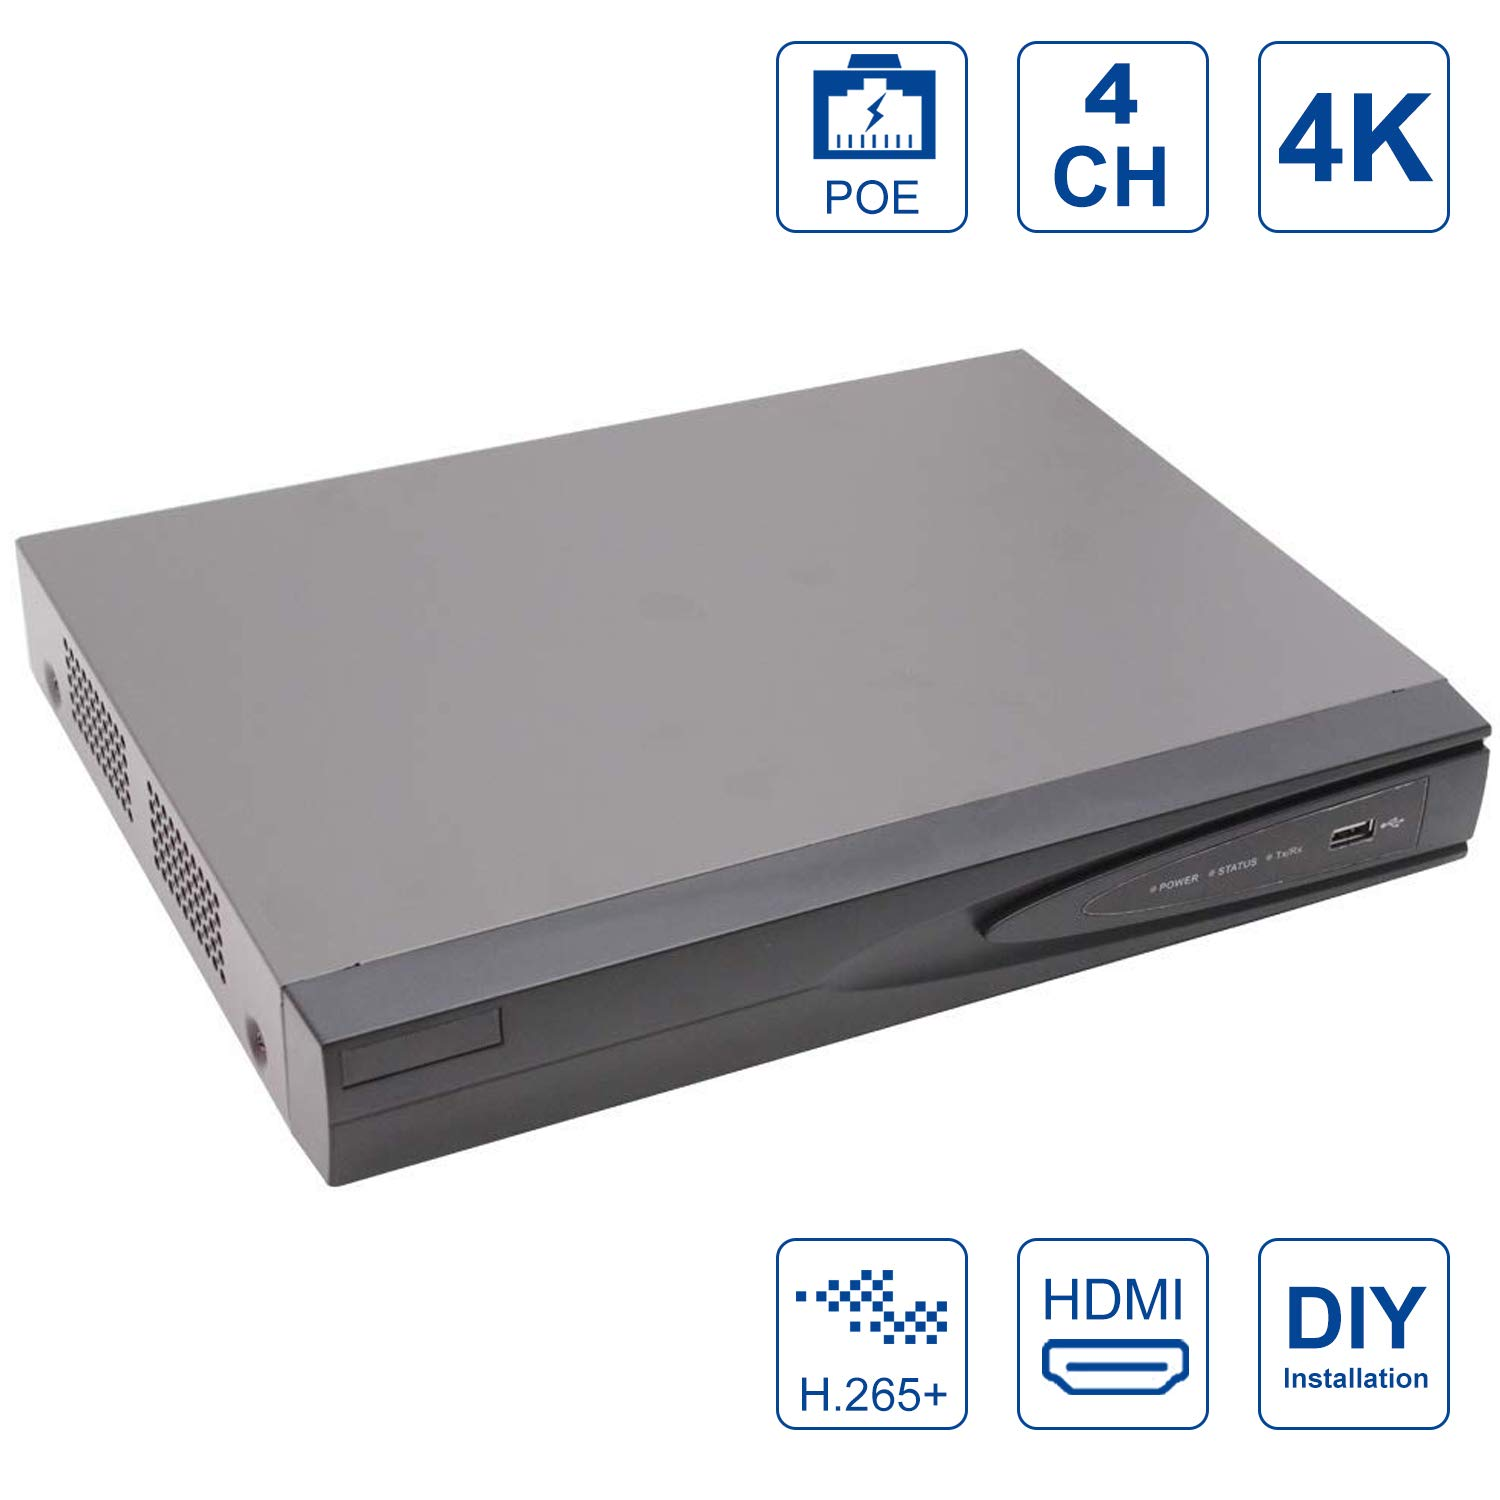 4CH NVR Network Video Recorder, Support 1-ch HDMI, 1-ch VGA, HMDI at up to 4K(3840x2160) Resolution Plug & Play,Up to 6T(No HDD Include)